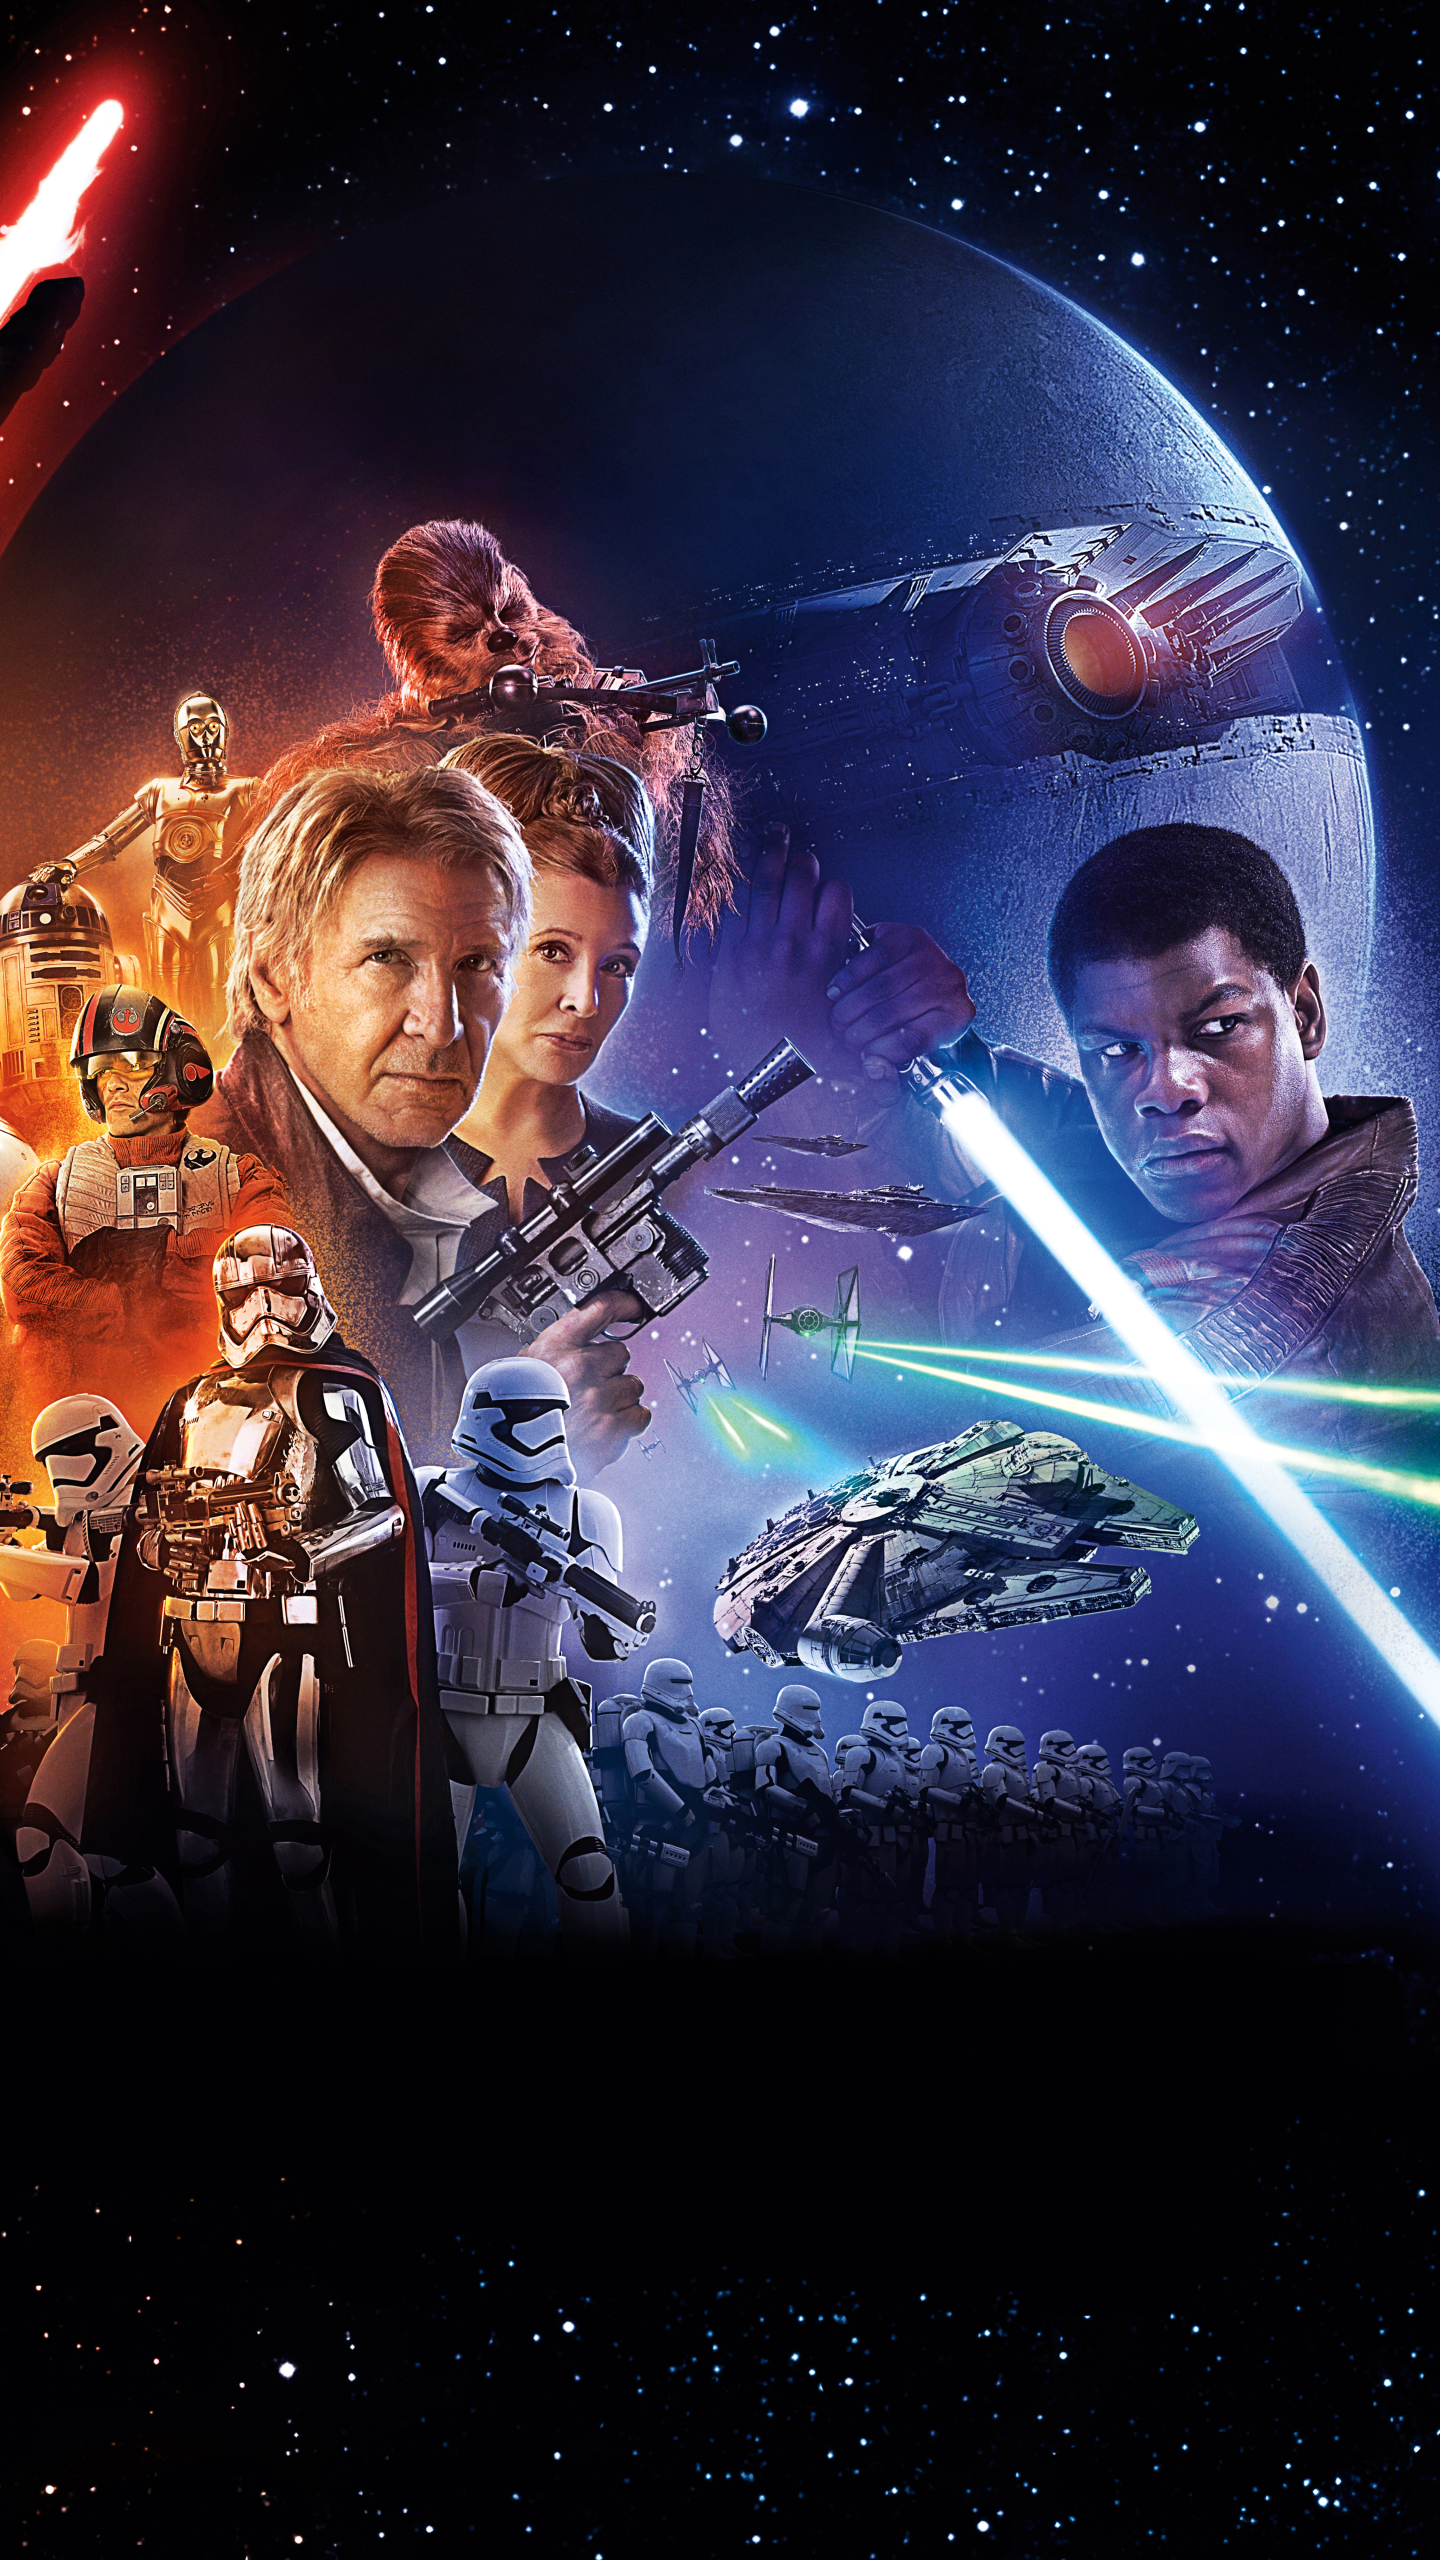 iphone 6 - movie/star wars episode vii: the force awakens